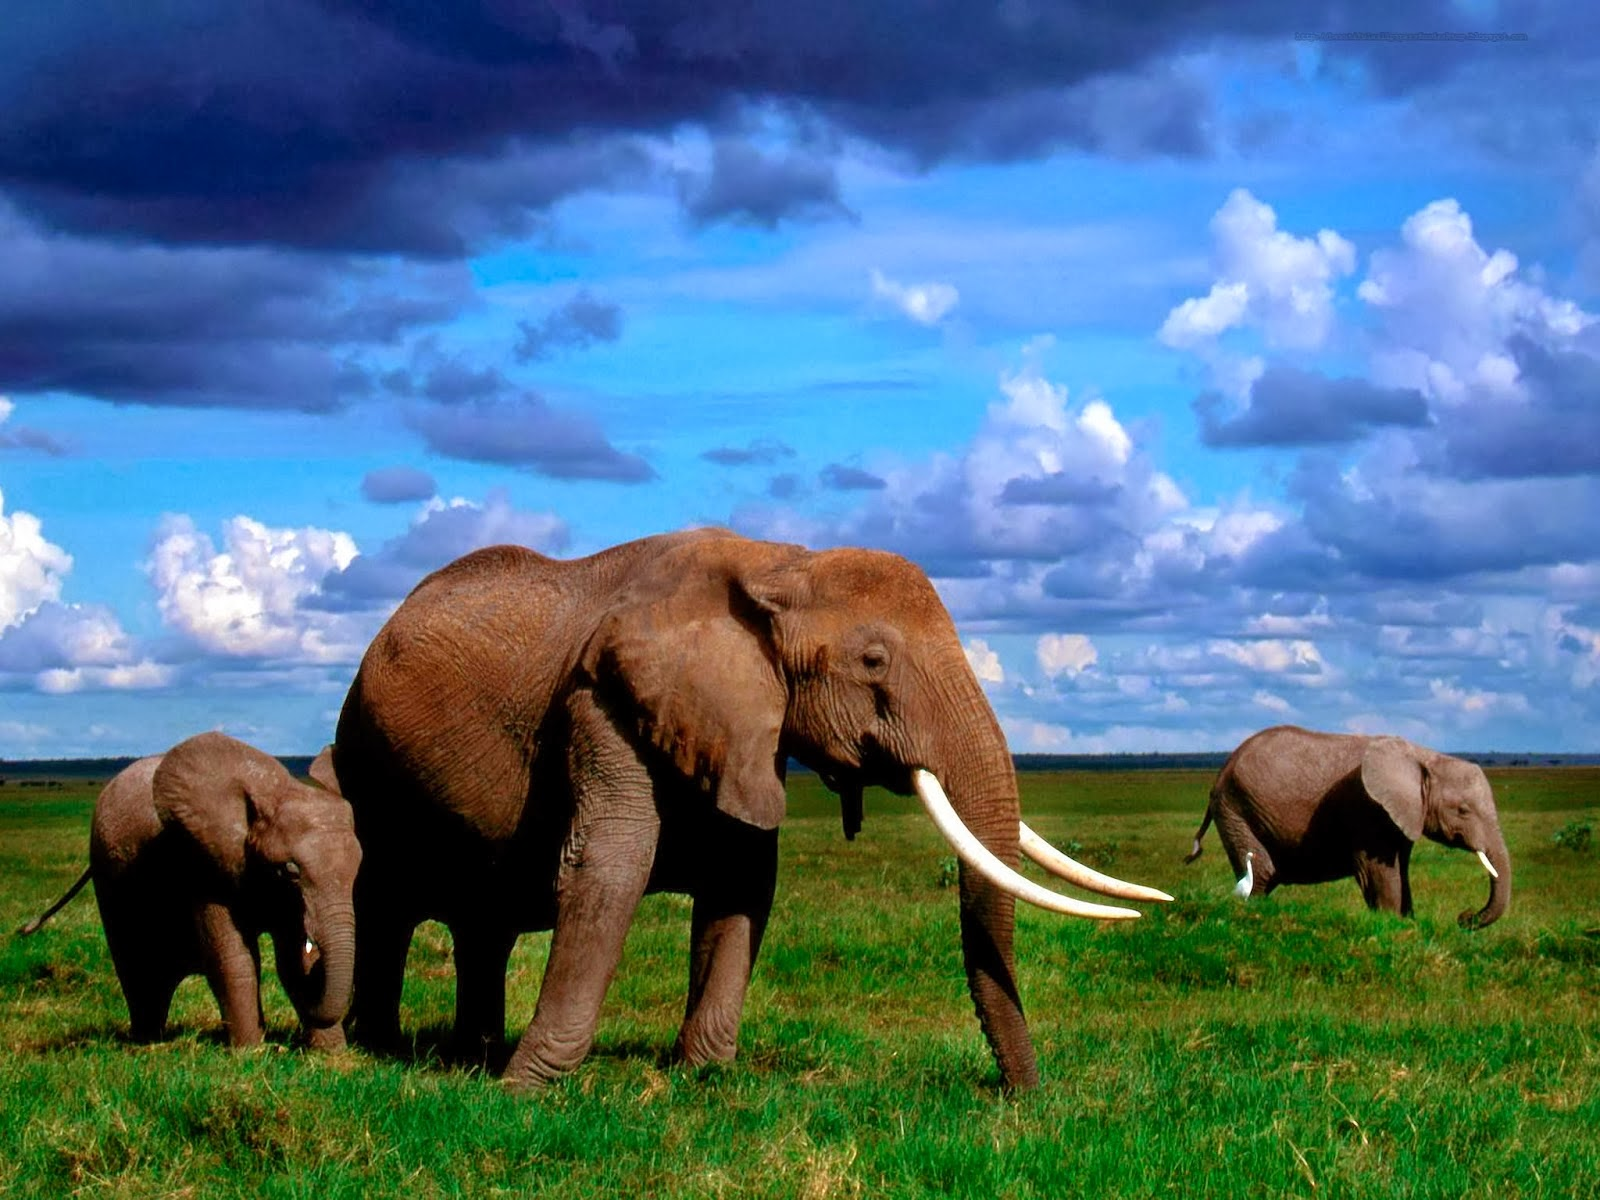 Elephent wallpapers hd